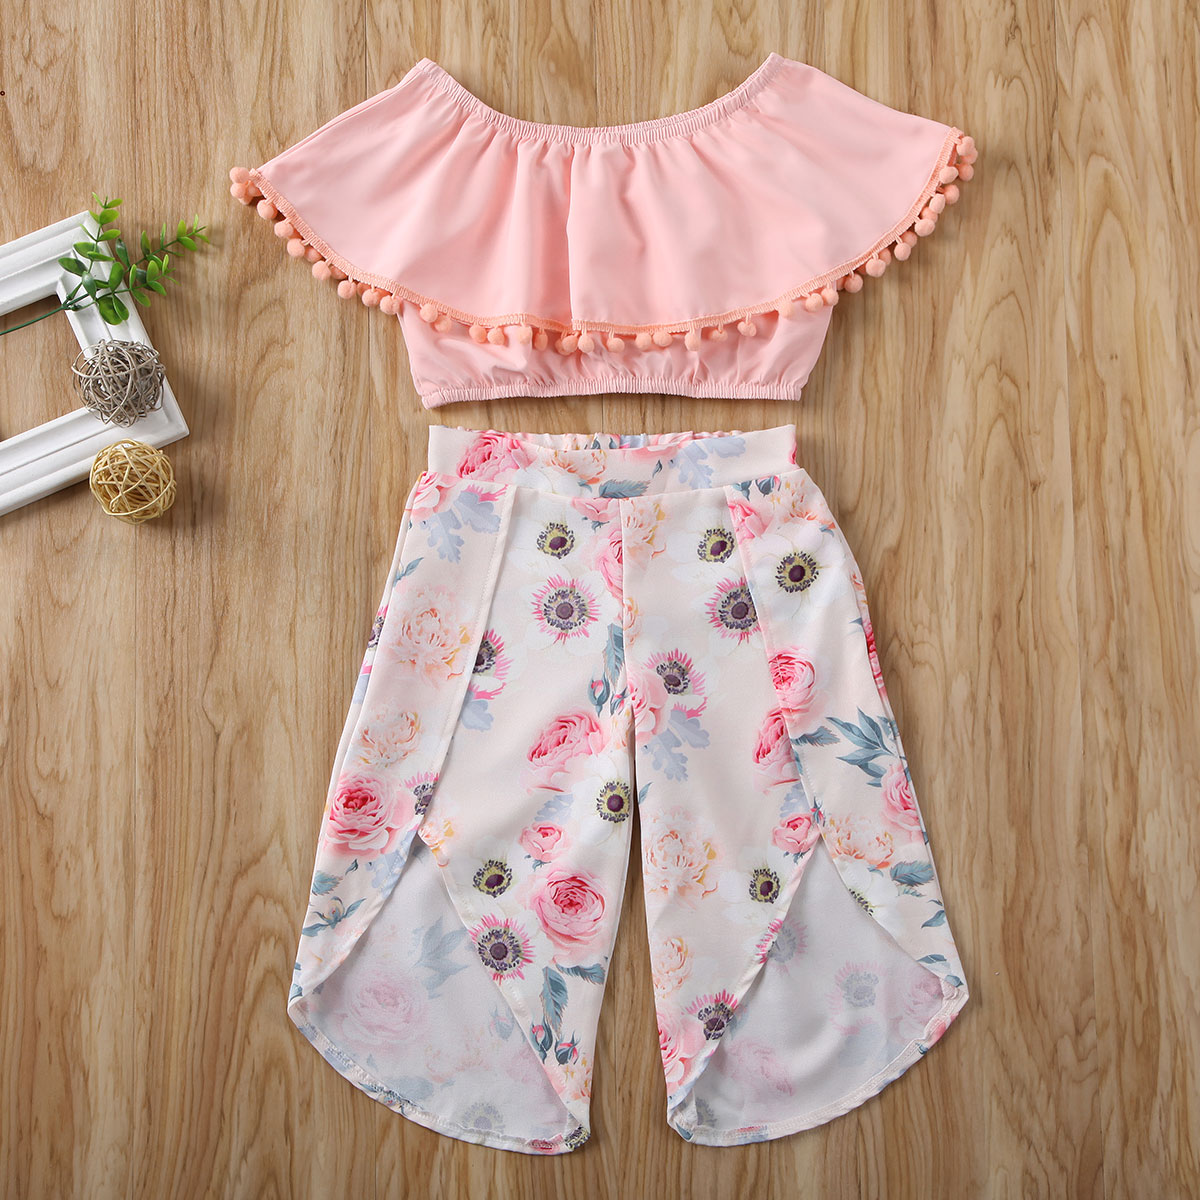 Pudcoco Newest Toddler Baby Girl Clothes Solid Color Ruffle Tassel Tops Flower Print Long Pants 2Pcs Outfits Clothes Summer